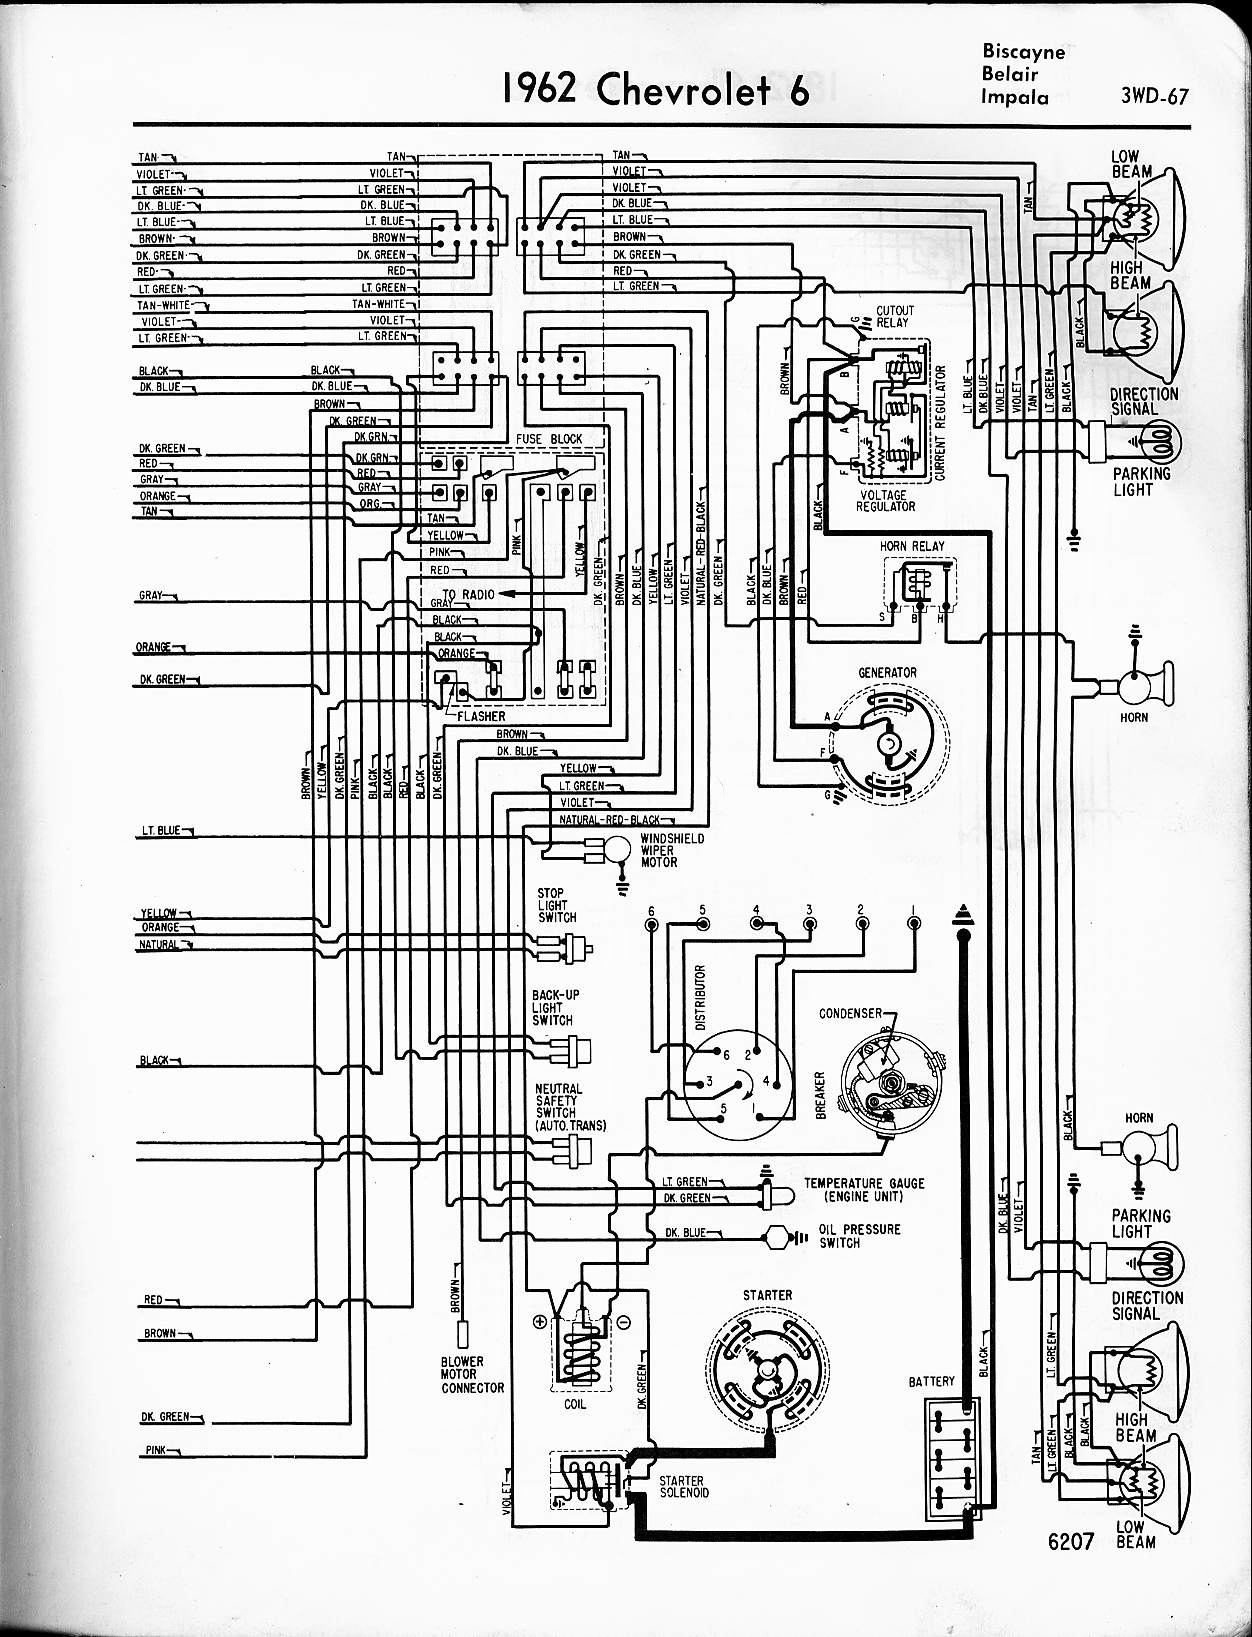 Gm truck parts 14519c 1970 chevrolet truck full color wiring chevy chevelle wiring diagram 1970s chevy silverado wiring diagram